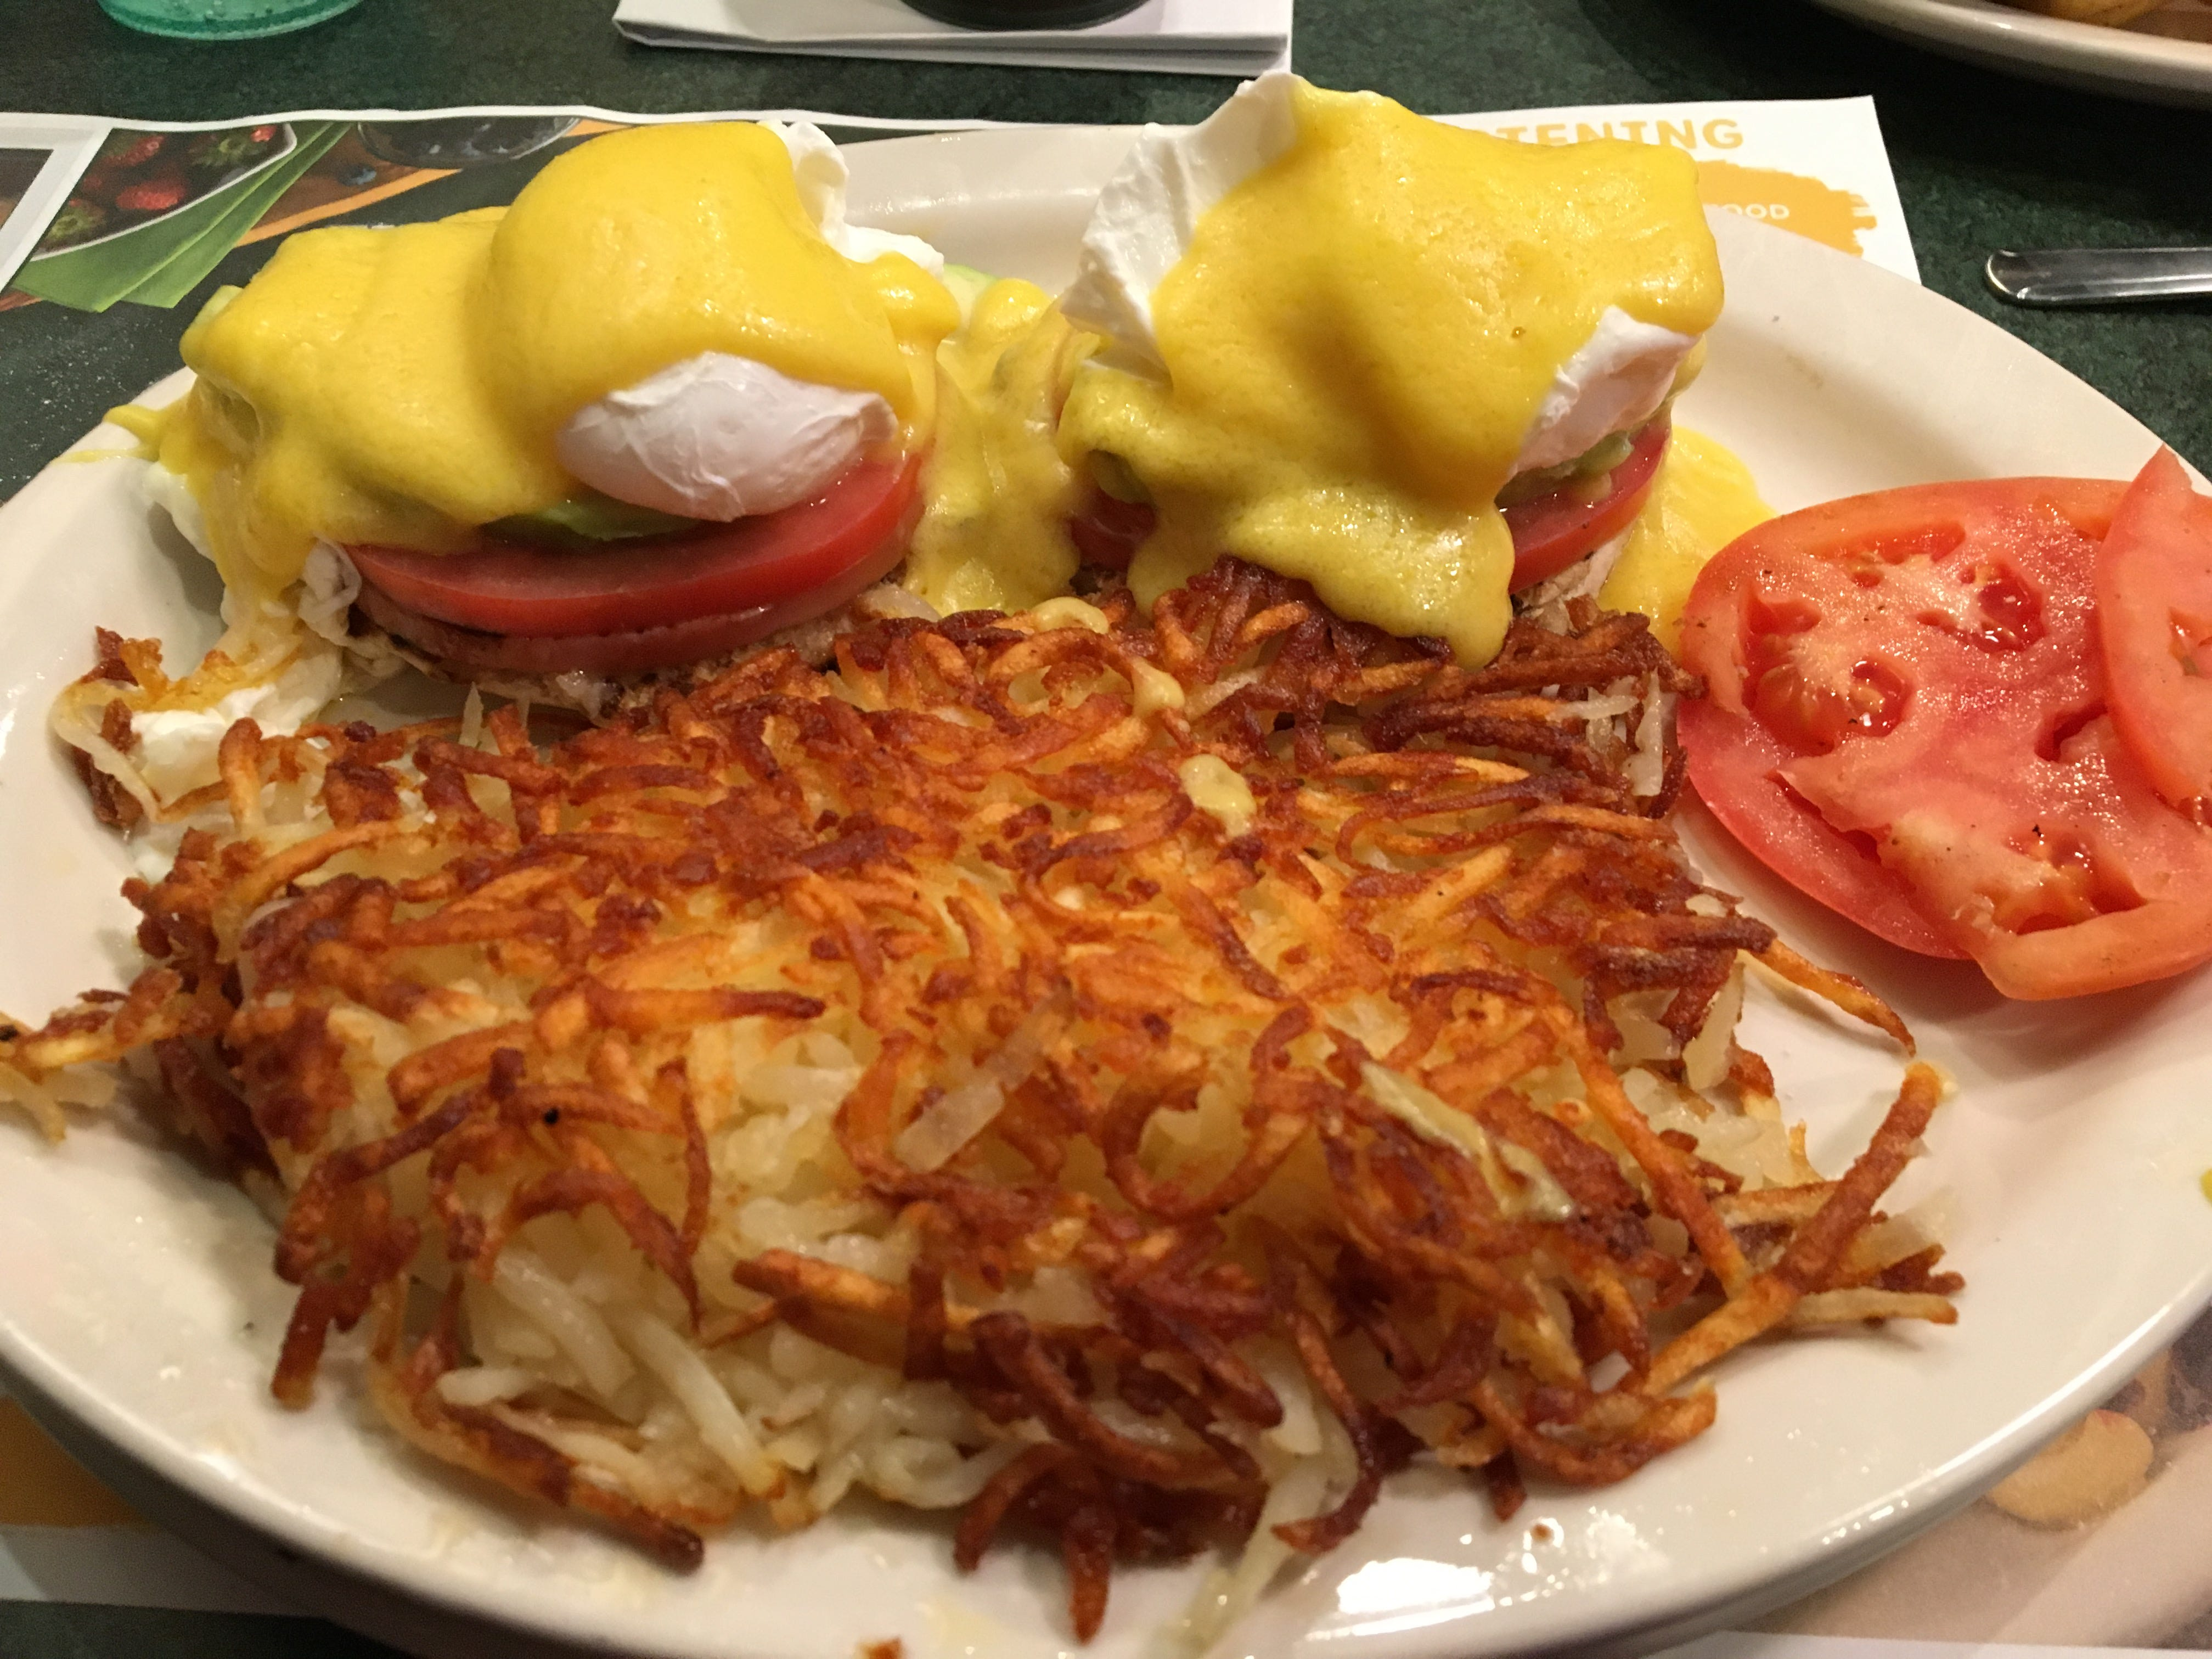 The San Francisco Eggs Benedict features fluffy poached eggs, avocado slices and tomatoes atop an English muffin, with hollandaise sauced drizzle over.